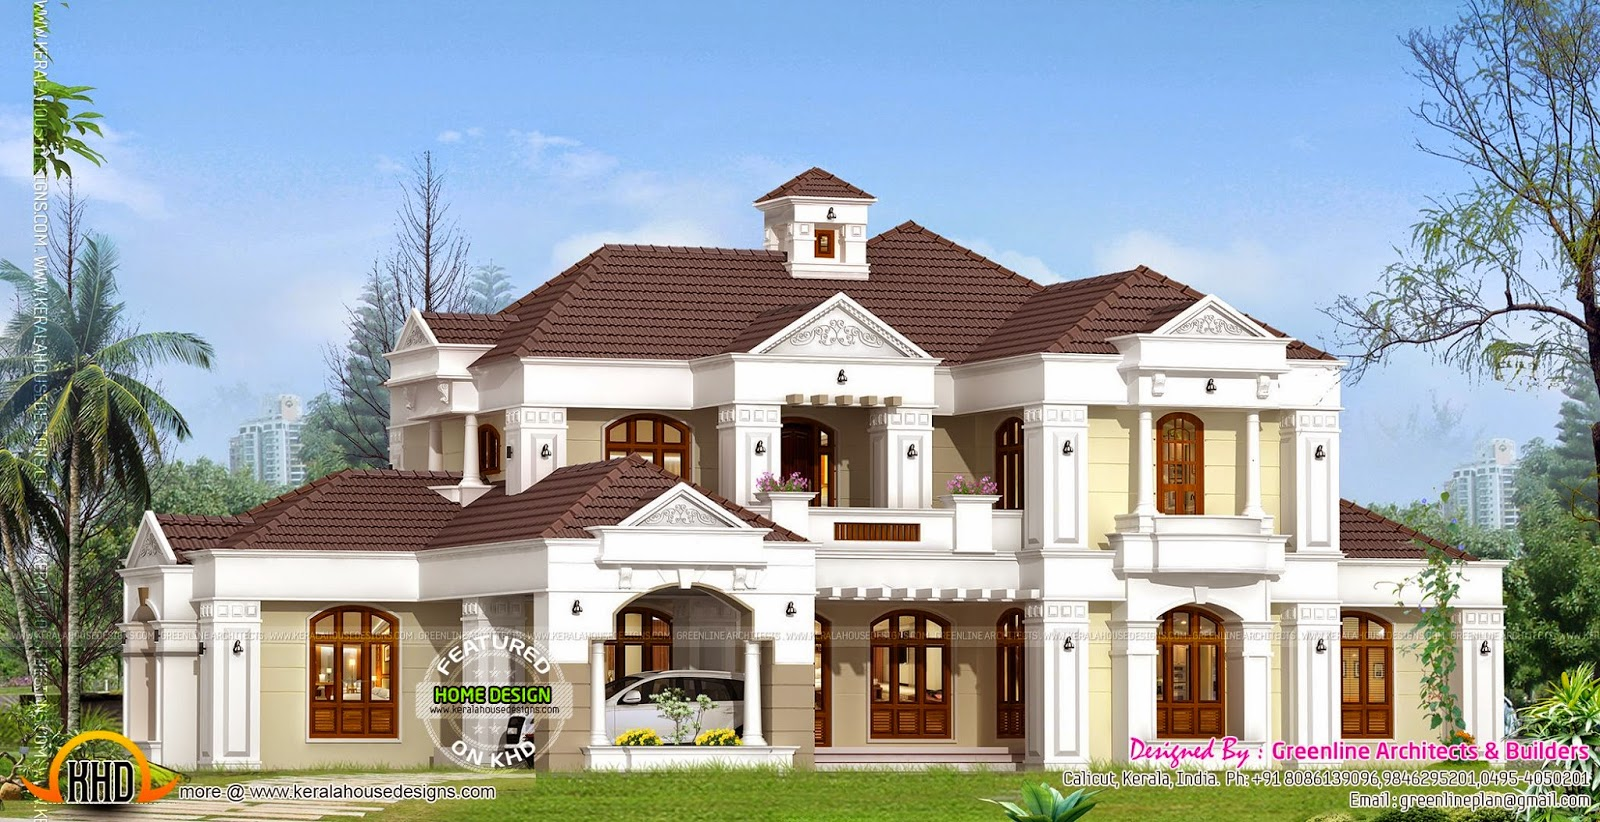 Luxury villa exterior kerala home design and floor plans for Luxury house exterior designs